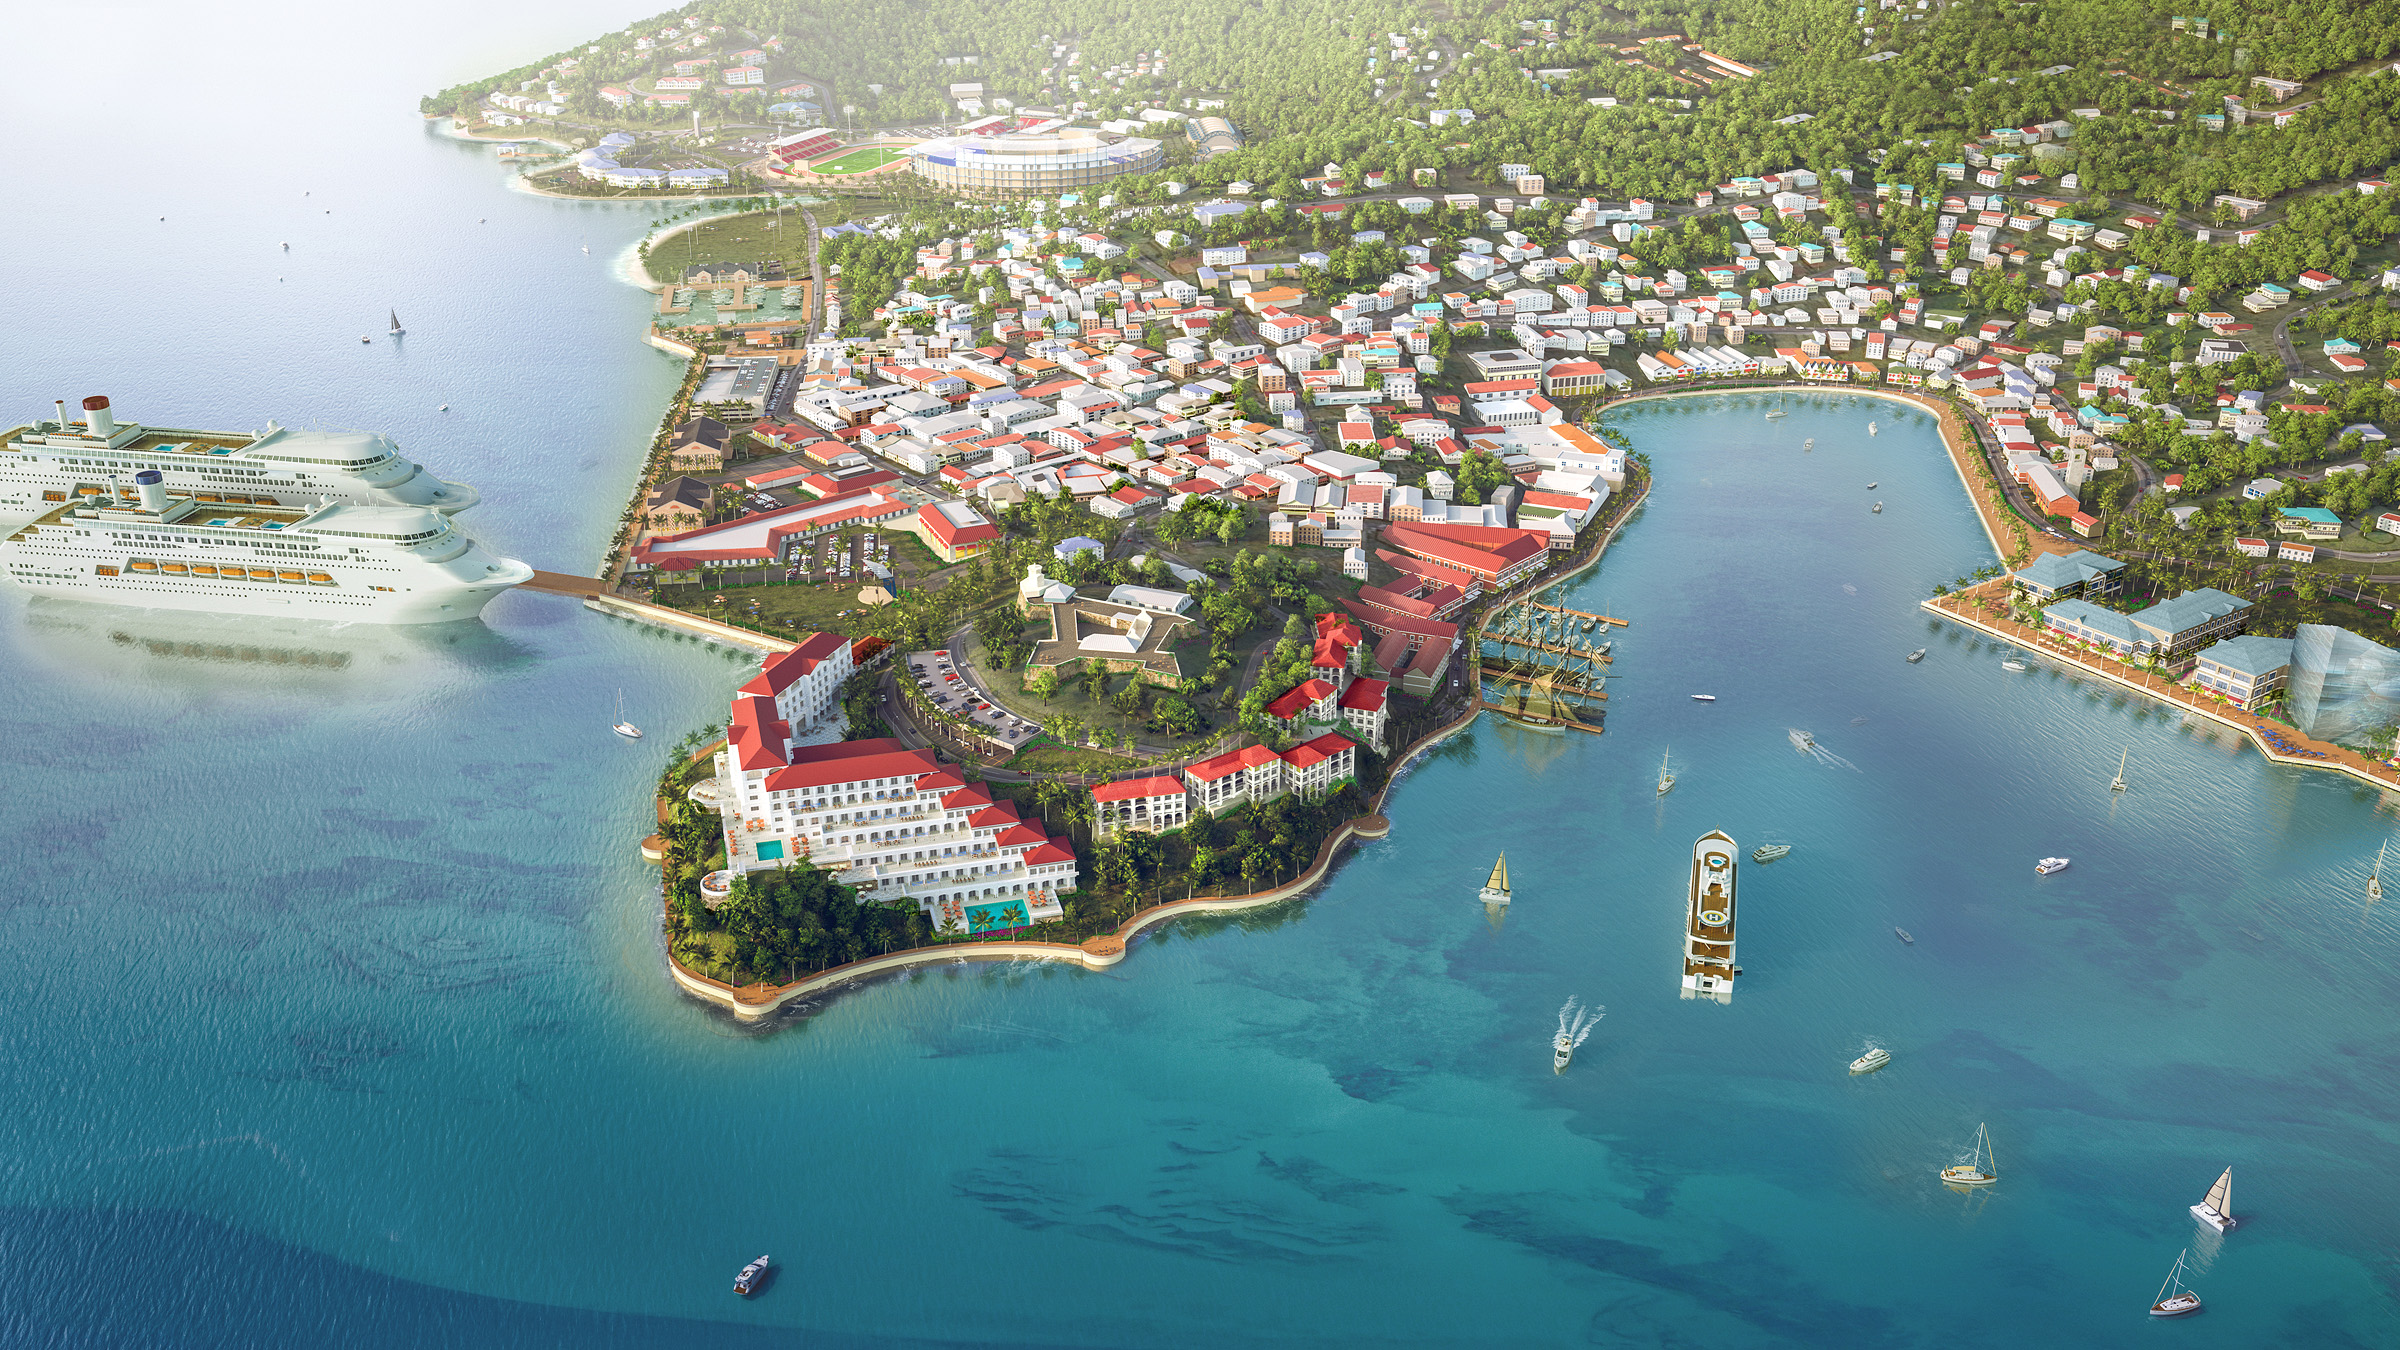 GRENADA CONCEPTUAL MASTER PLAN   St George's, Grenada |   Client:  RM Strategies